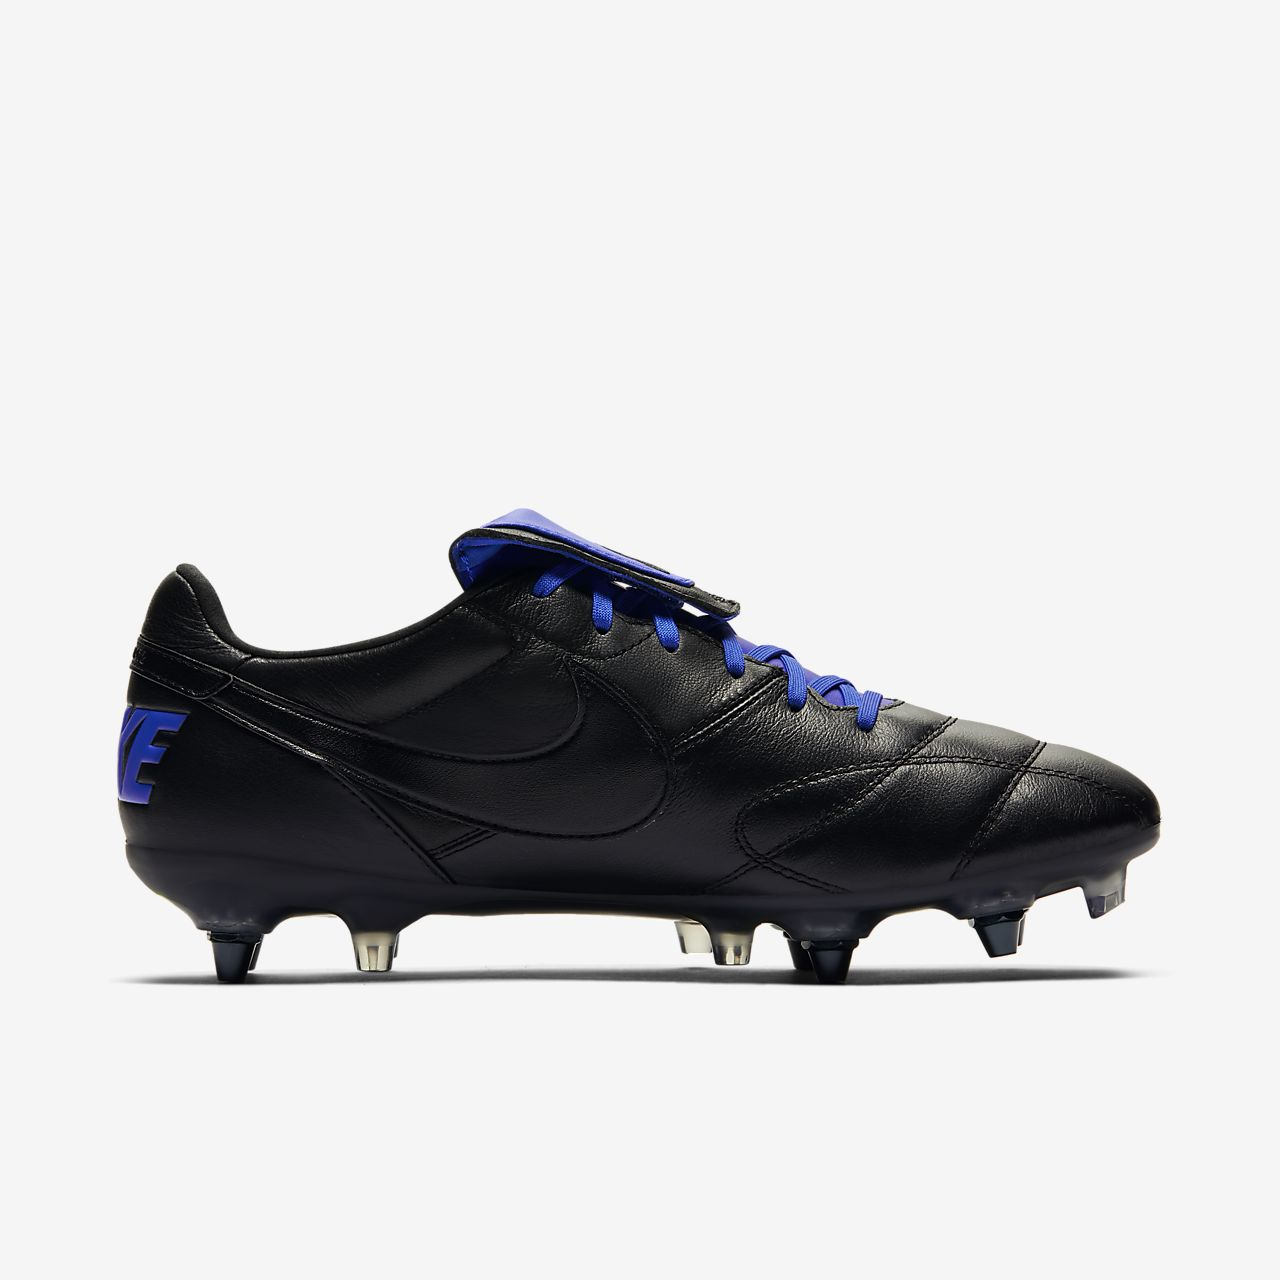 44a2b94097a Nike Premier II Anti-Clog Traction SG-PRO Soft-Ground Football Boot ...